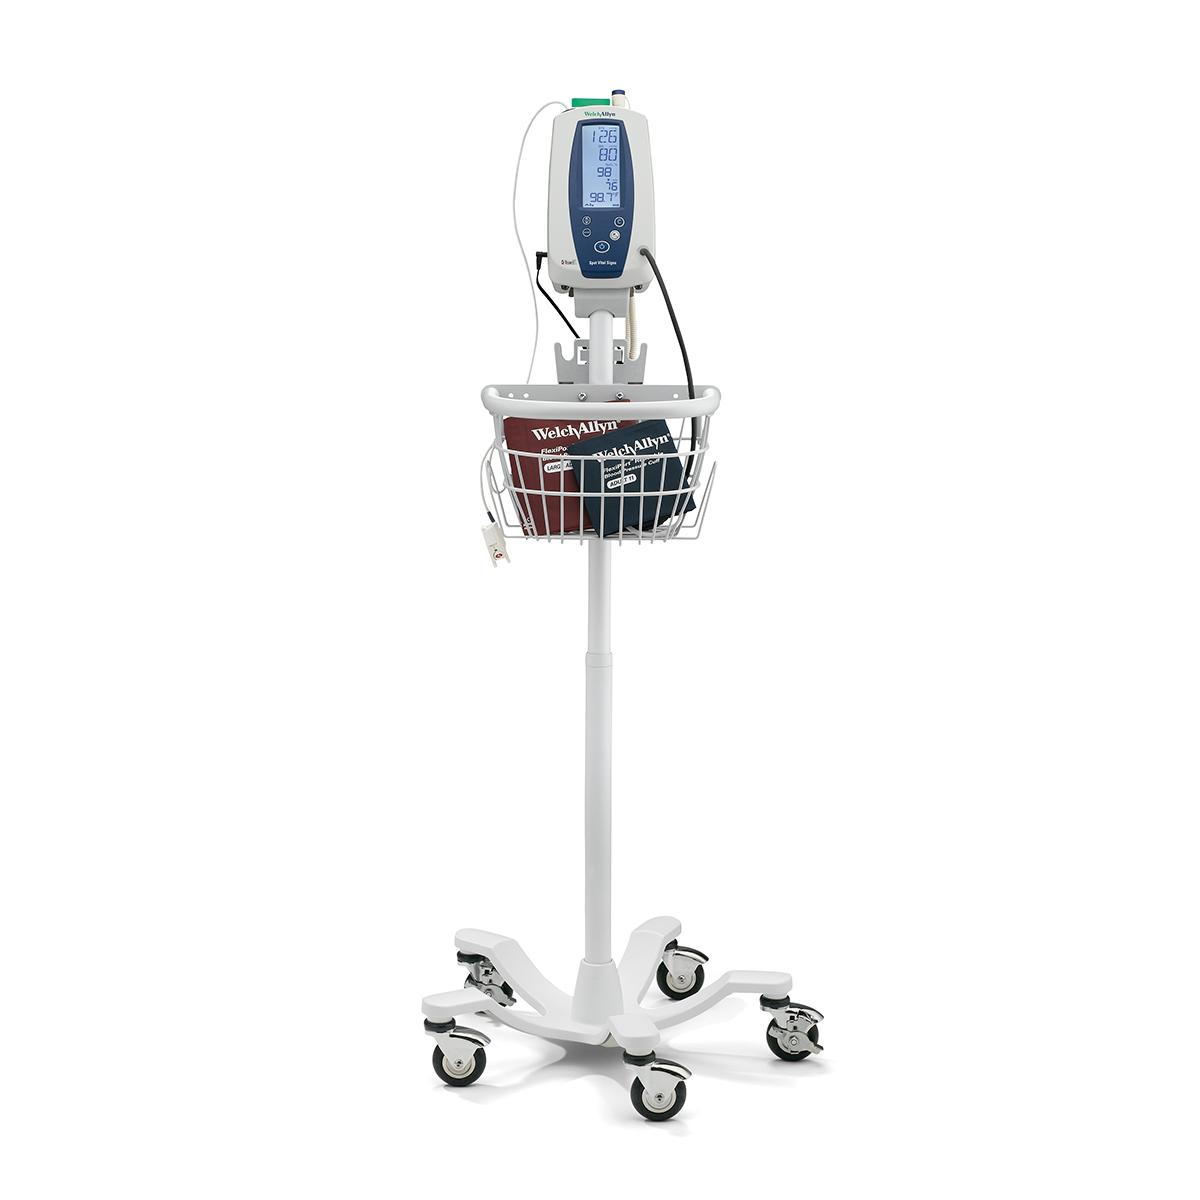 Spot Vital Signs Device on rolling stand